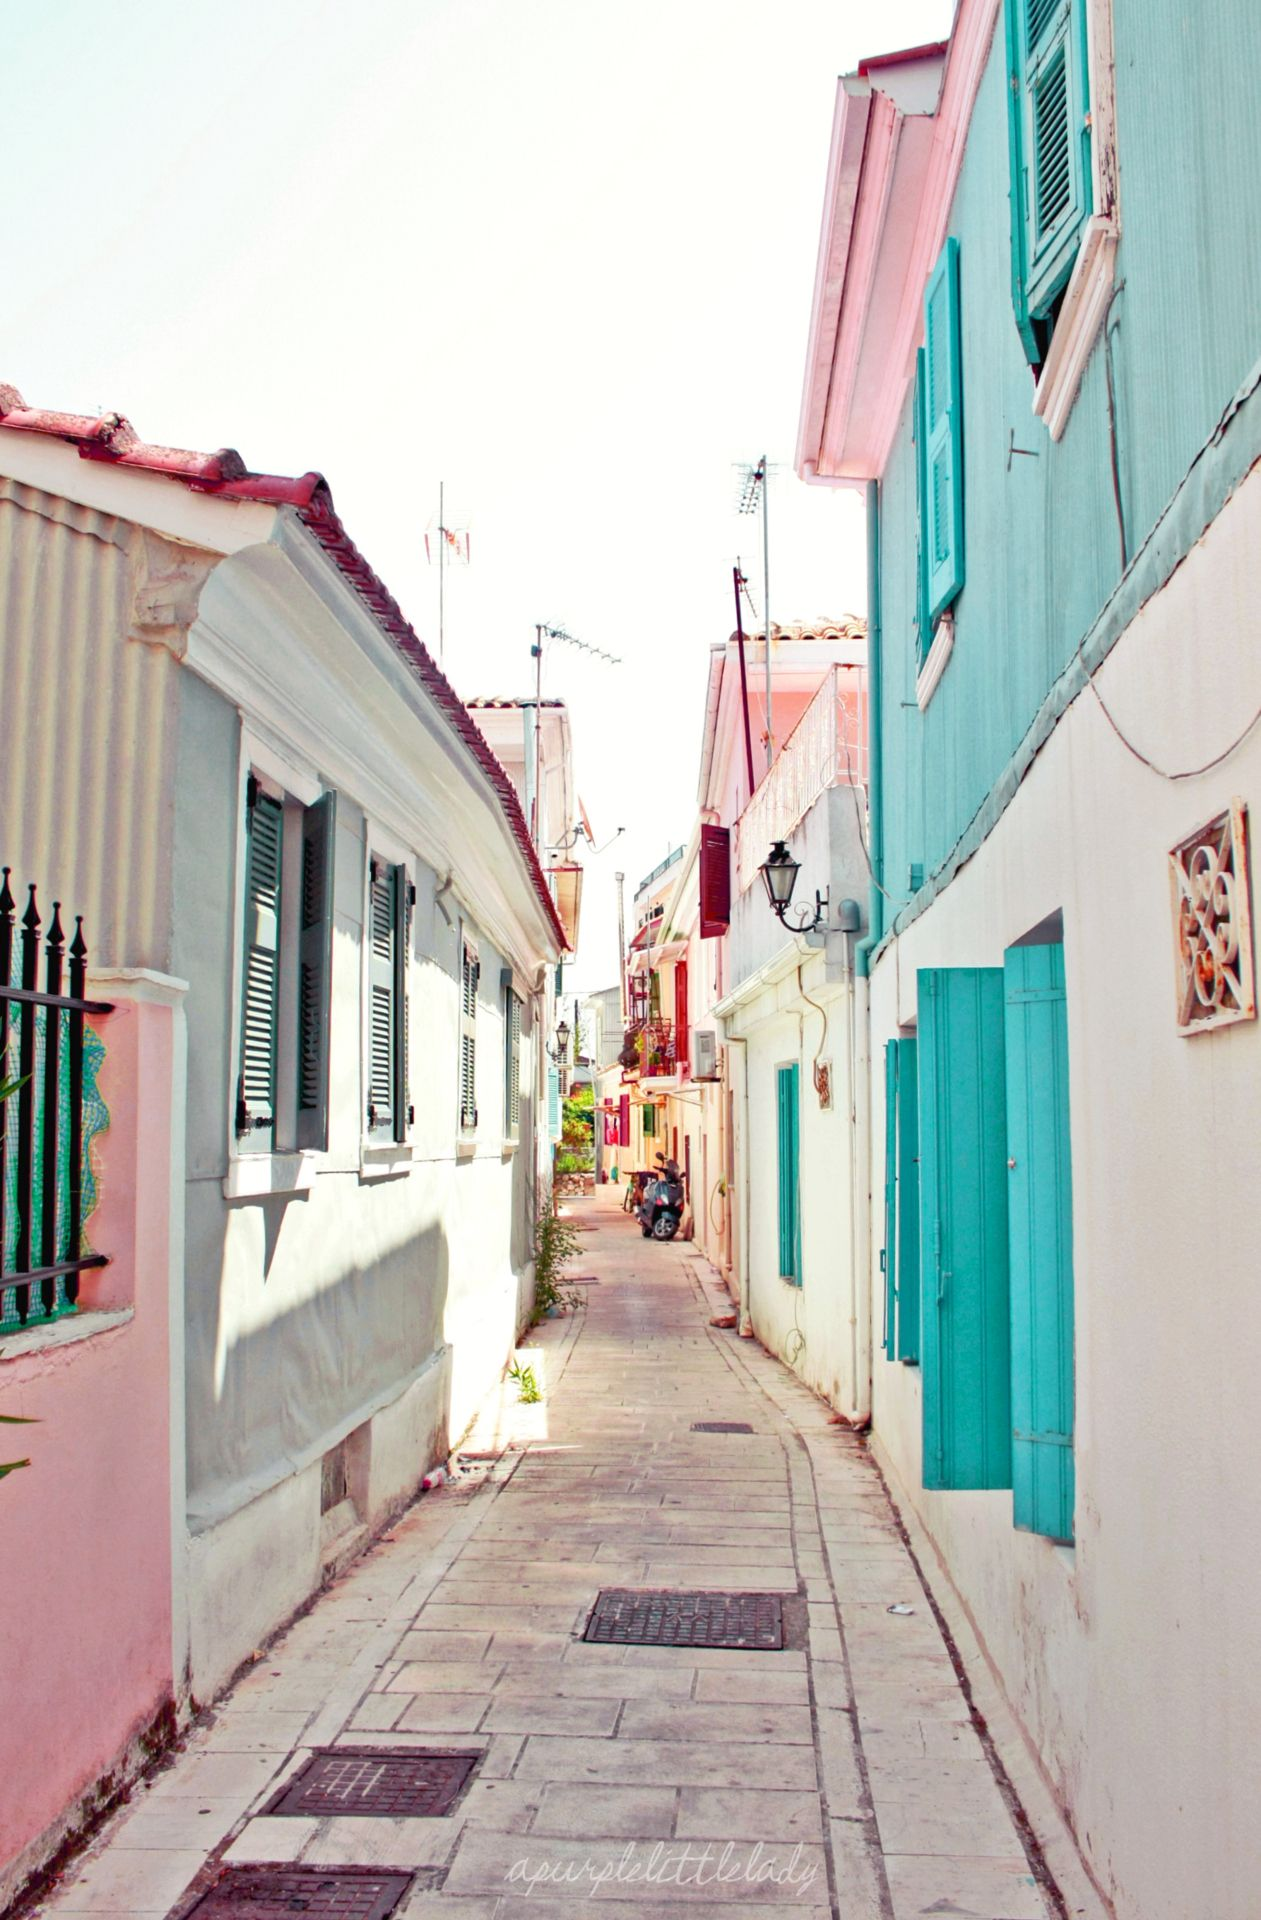 Perhaps the snazziest street ever complete with pretty pastels. Take me here, please. #SMIRNOFFSorbet @Smirnoff US